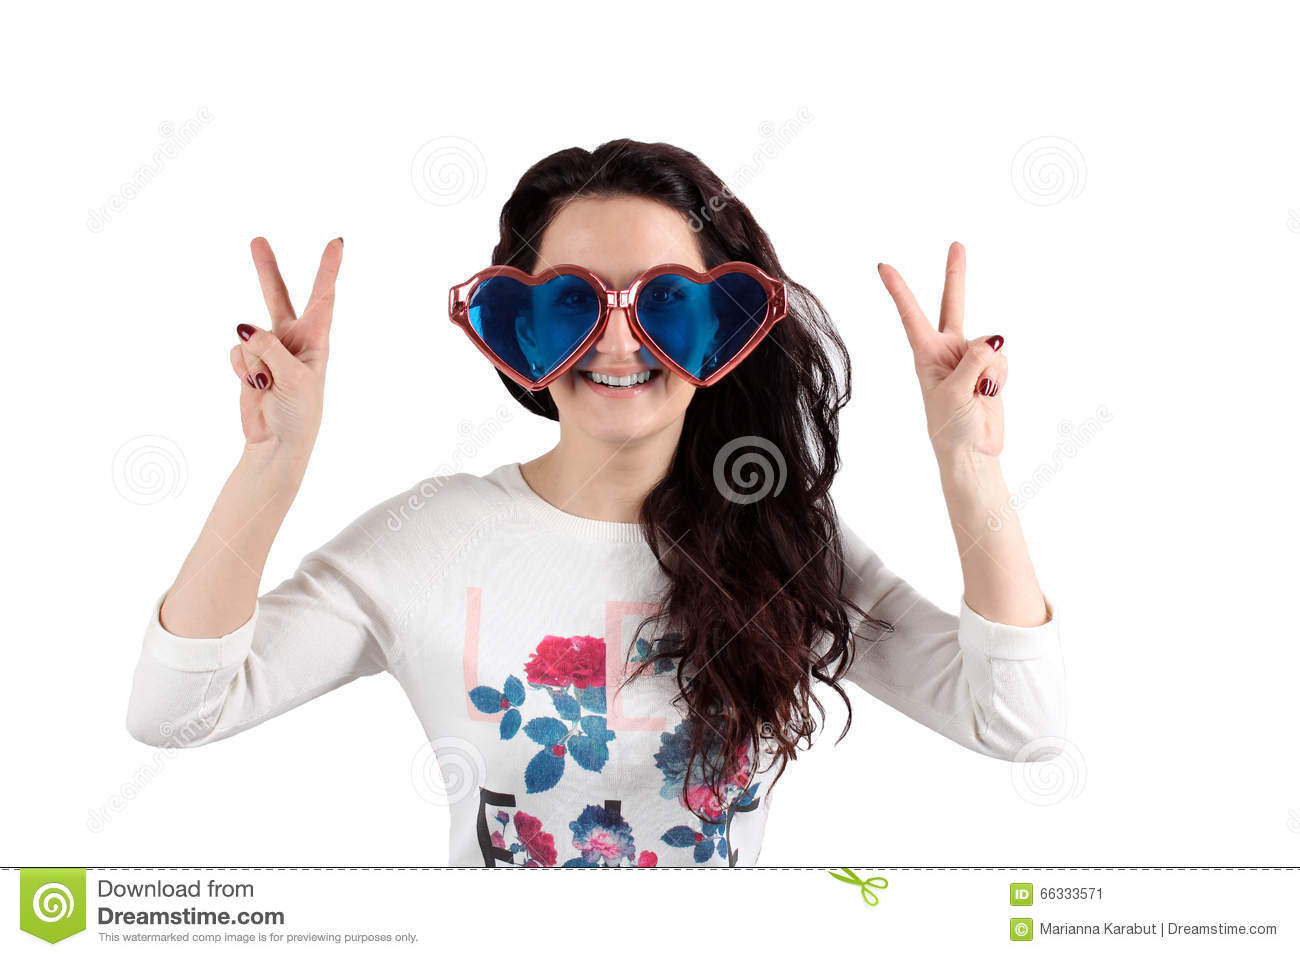 Girl on a white background with big glasses and her hands up.